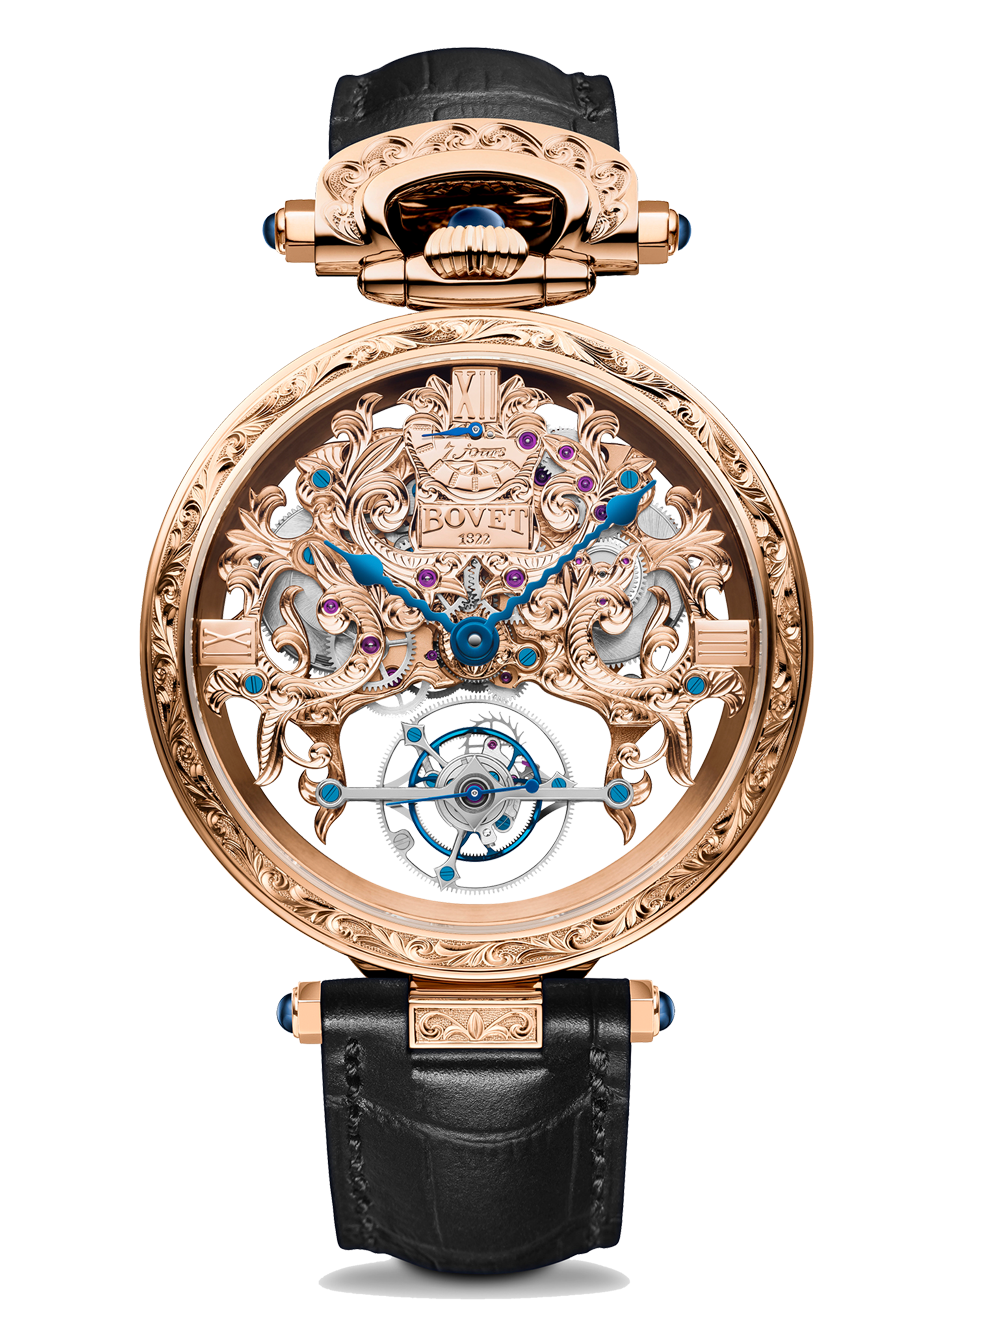 Amadeo® Fleurier Complications